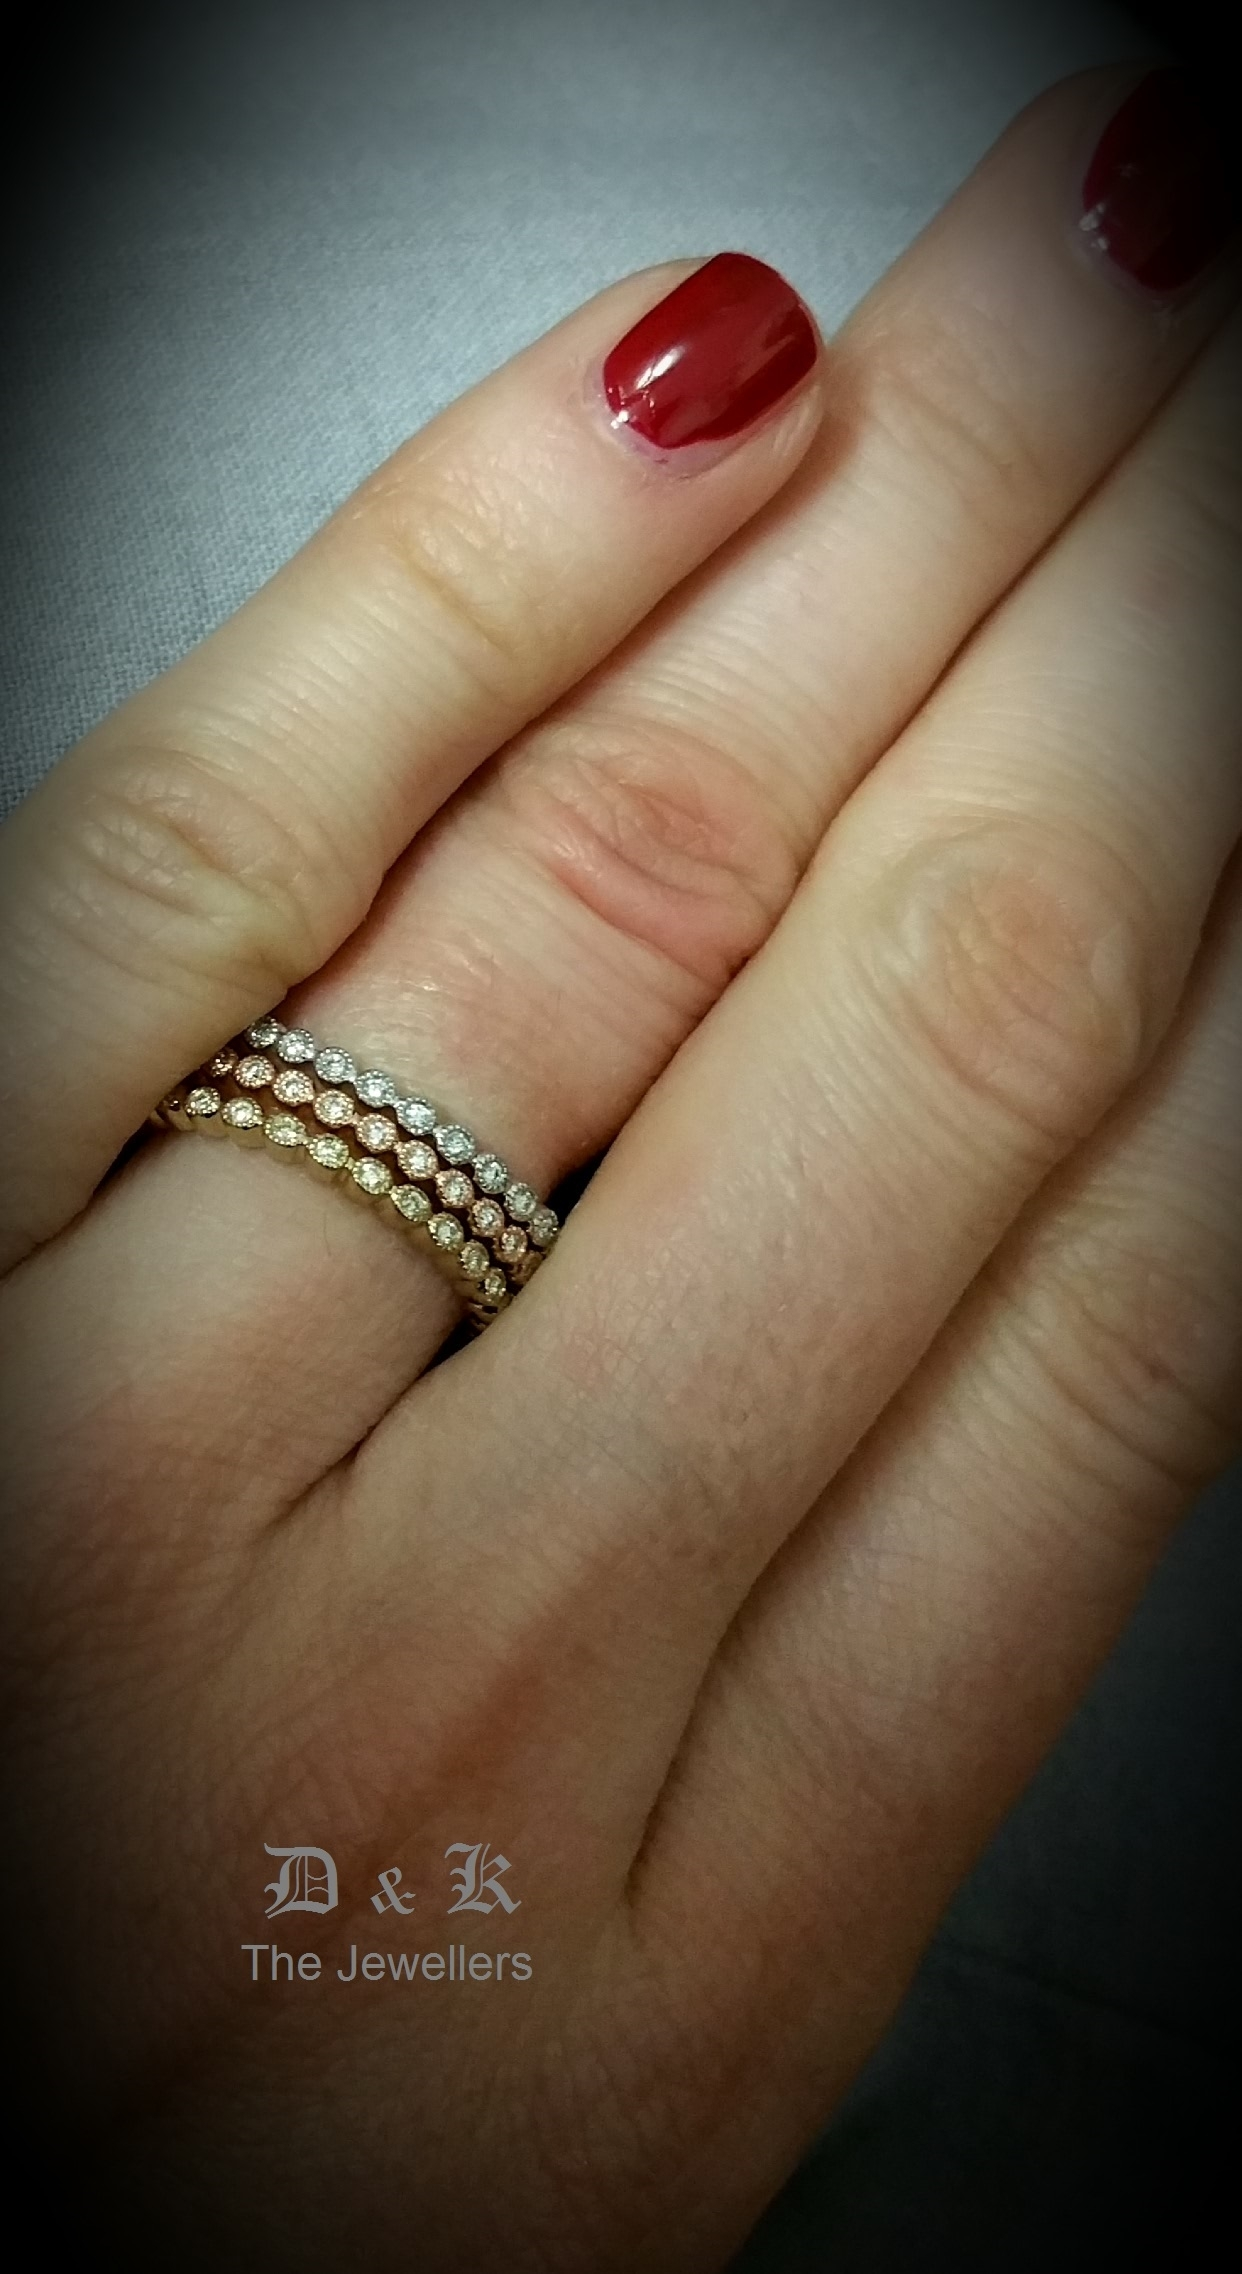 Eternity Ring Combining Rose Gold. Yellow Gold And White Gold Within Most Up To Date Three Stackable Chevron Diamond Rings (Gallery 12 of 15)